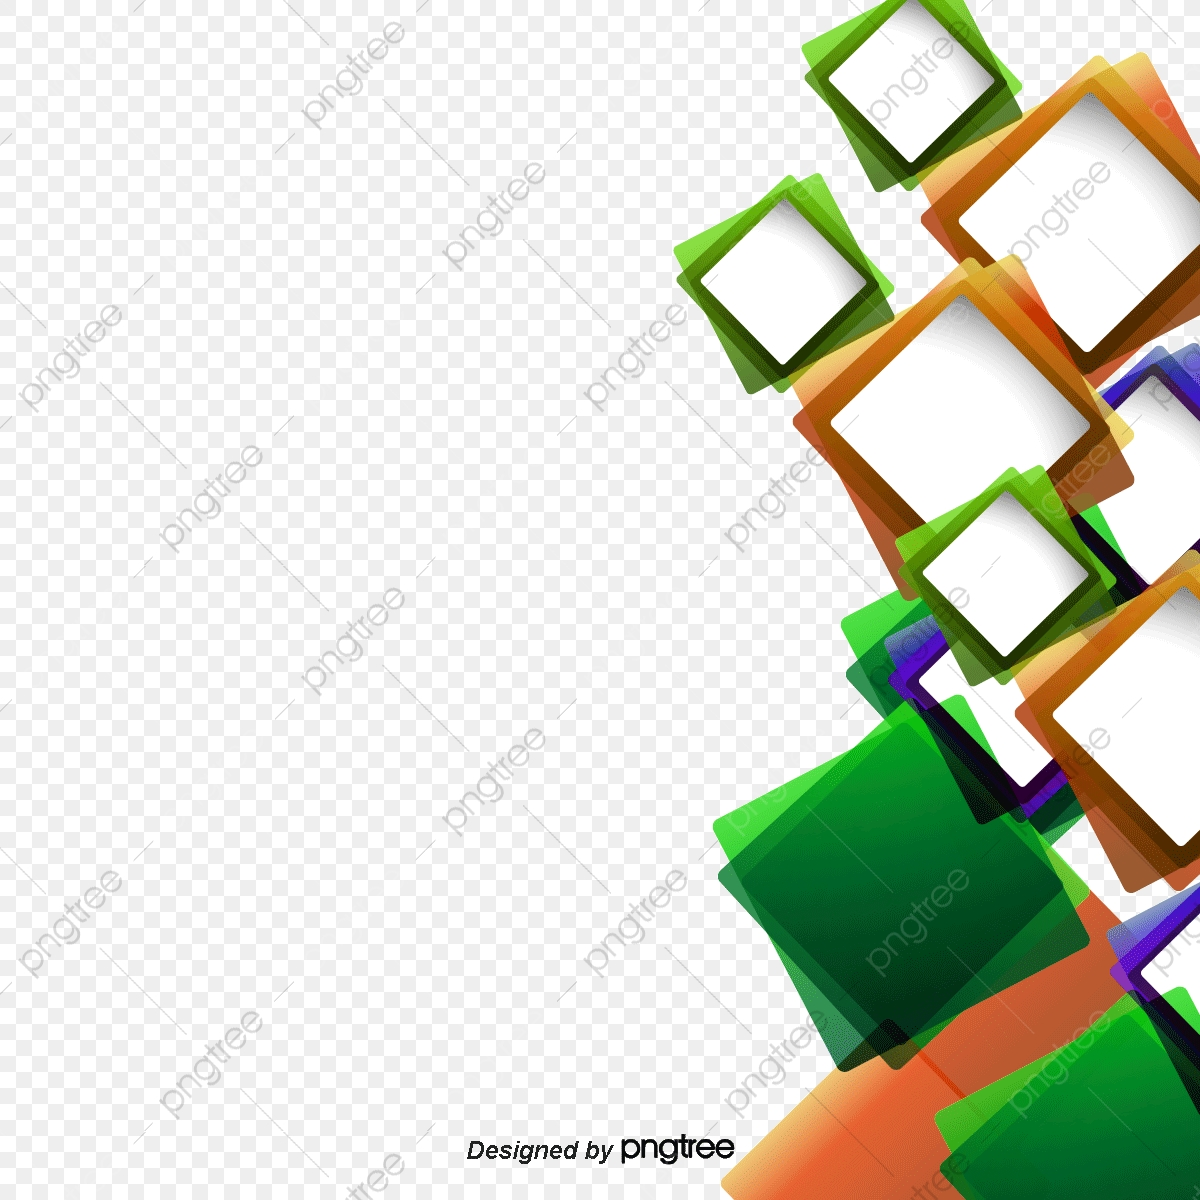 Vector Square Background, Hd, Vector, Concise PNG.